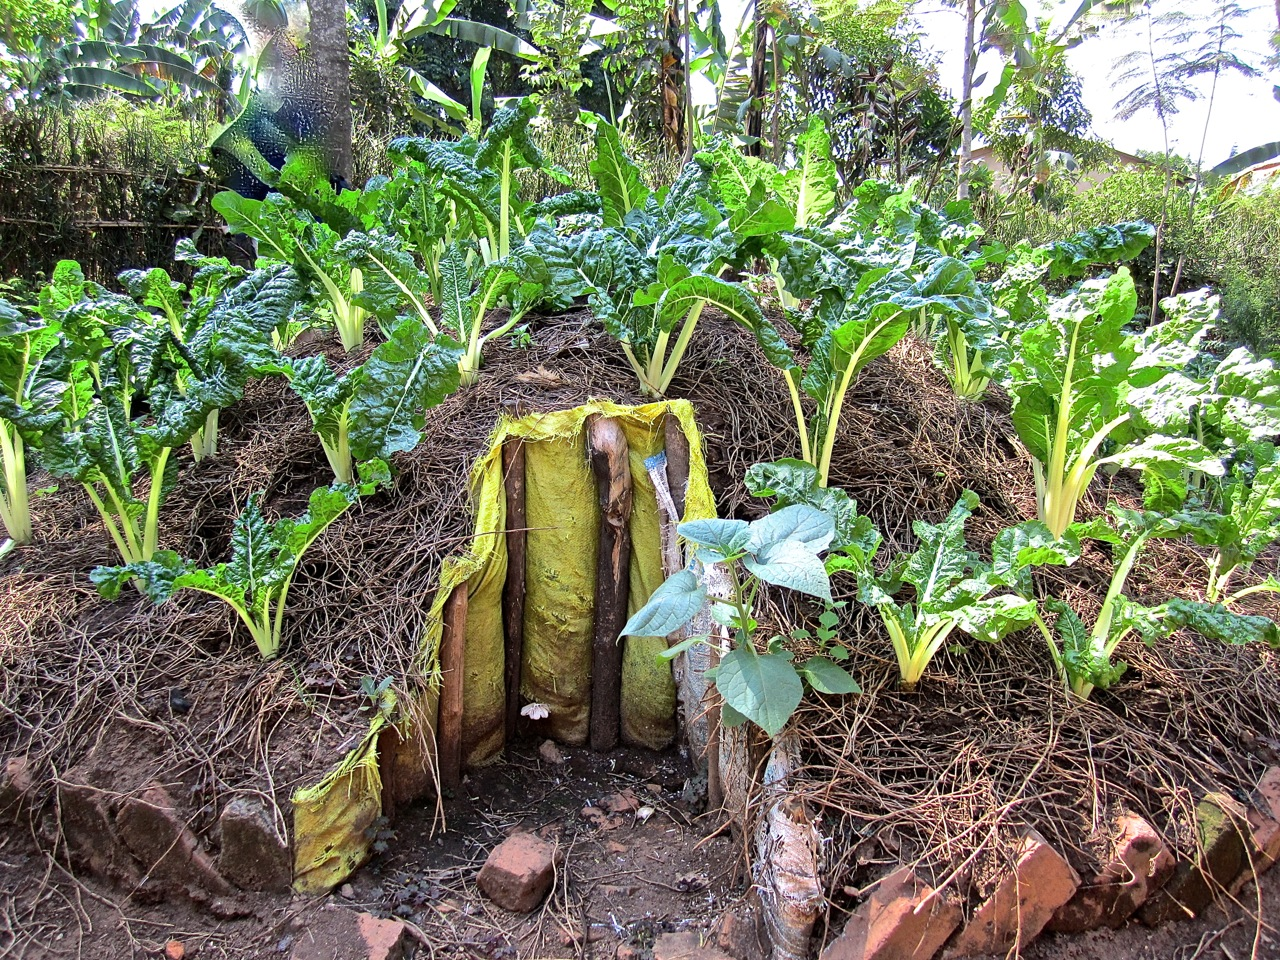 Nutritional gardens to improve diets at and beyond schools